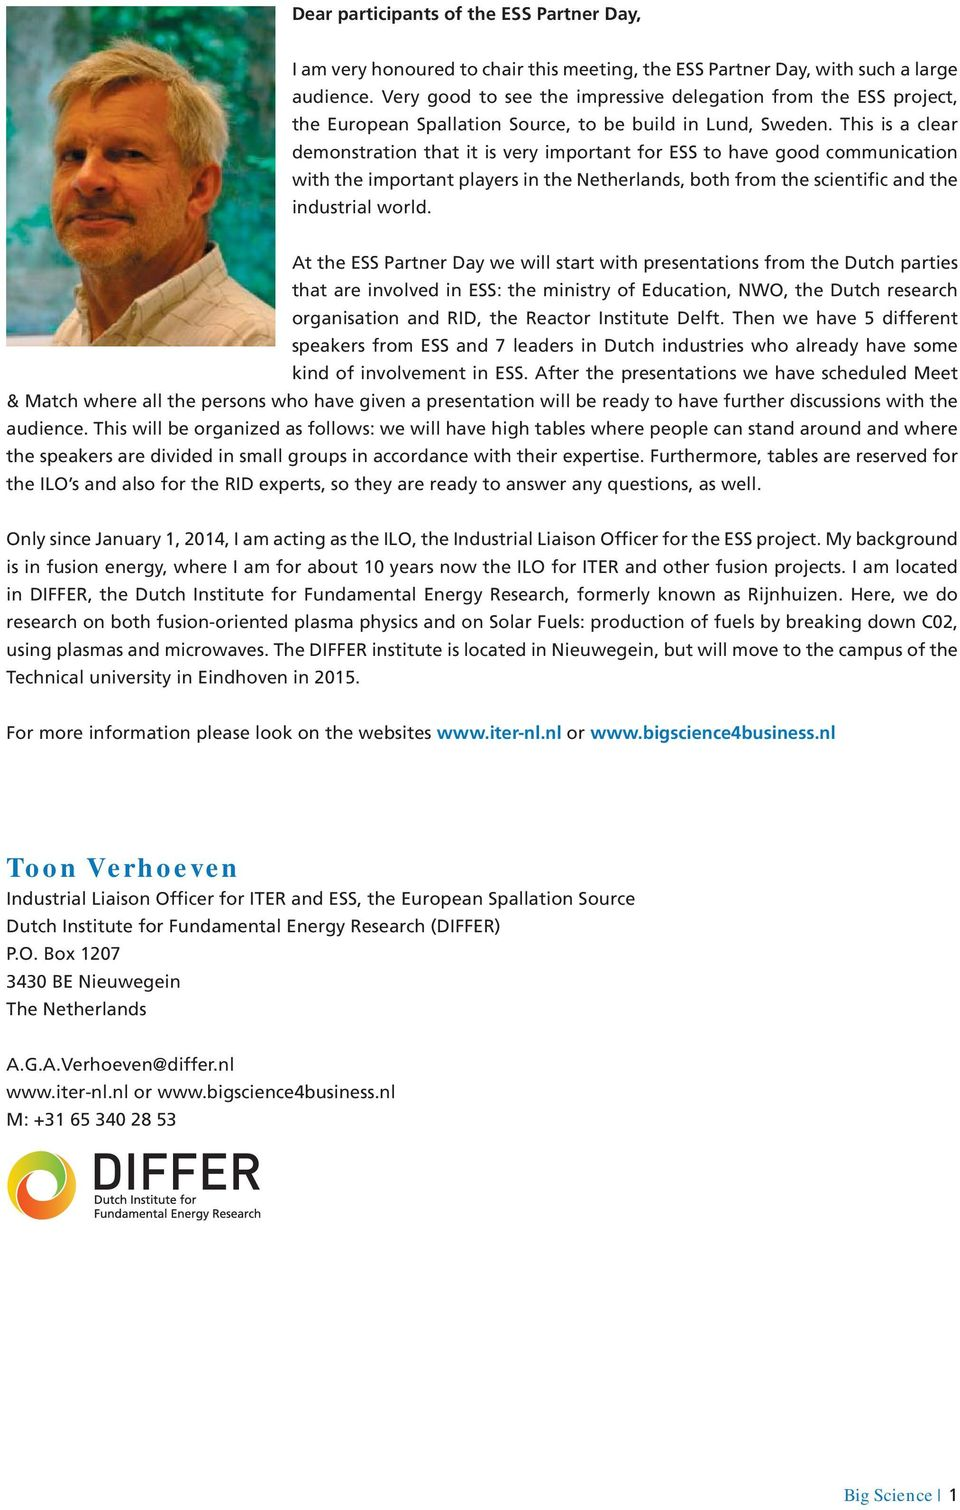 This is a clear demonstration that it is very important for ESS to have good communication with the important players in the Netherlands, both from the scientific and the industrial world.